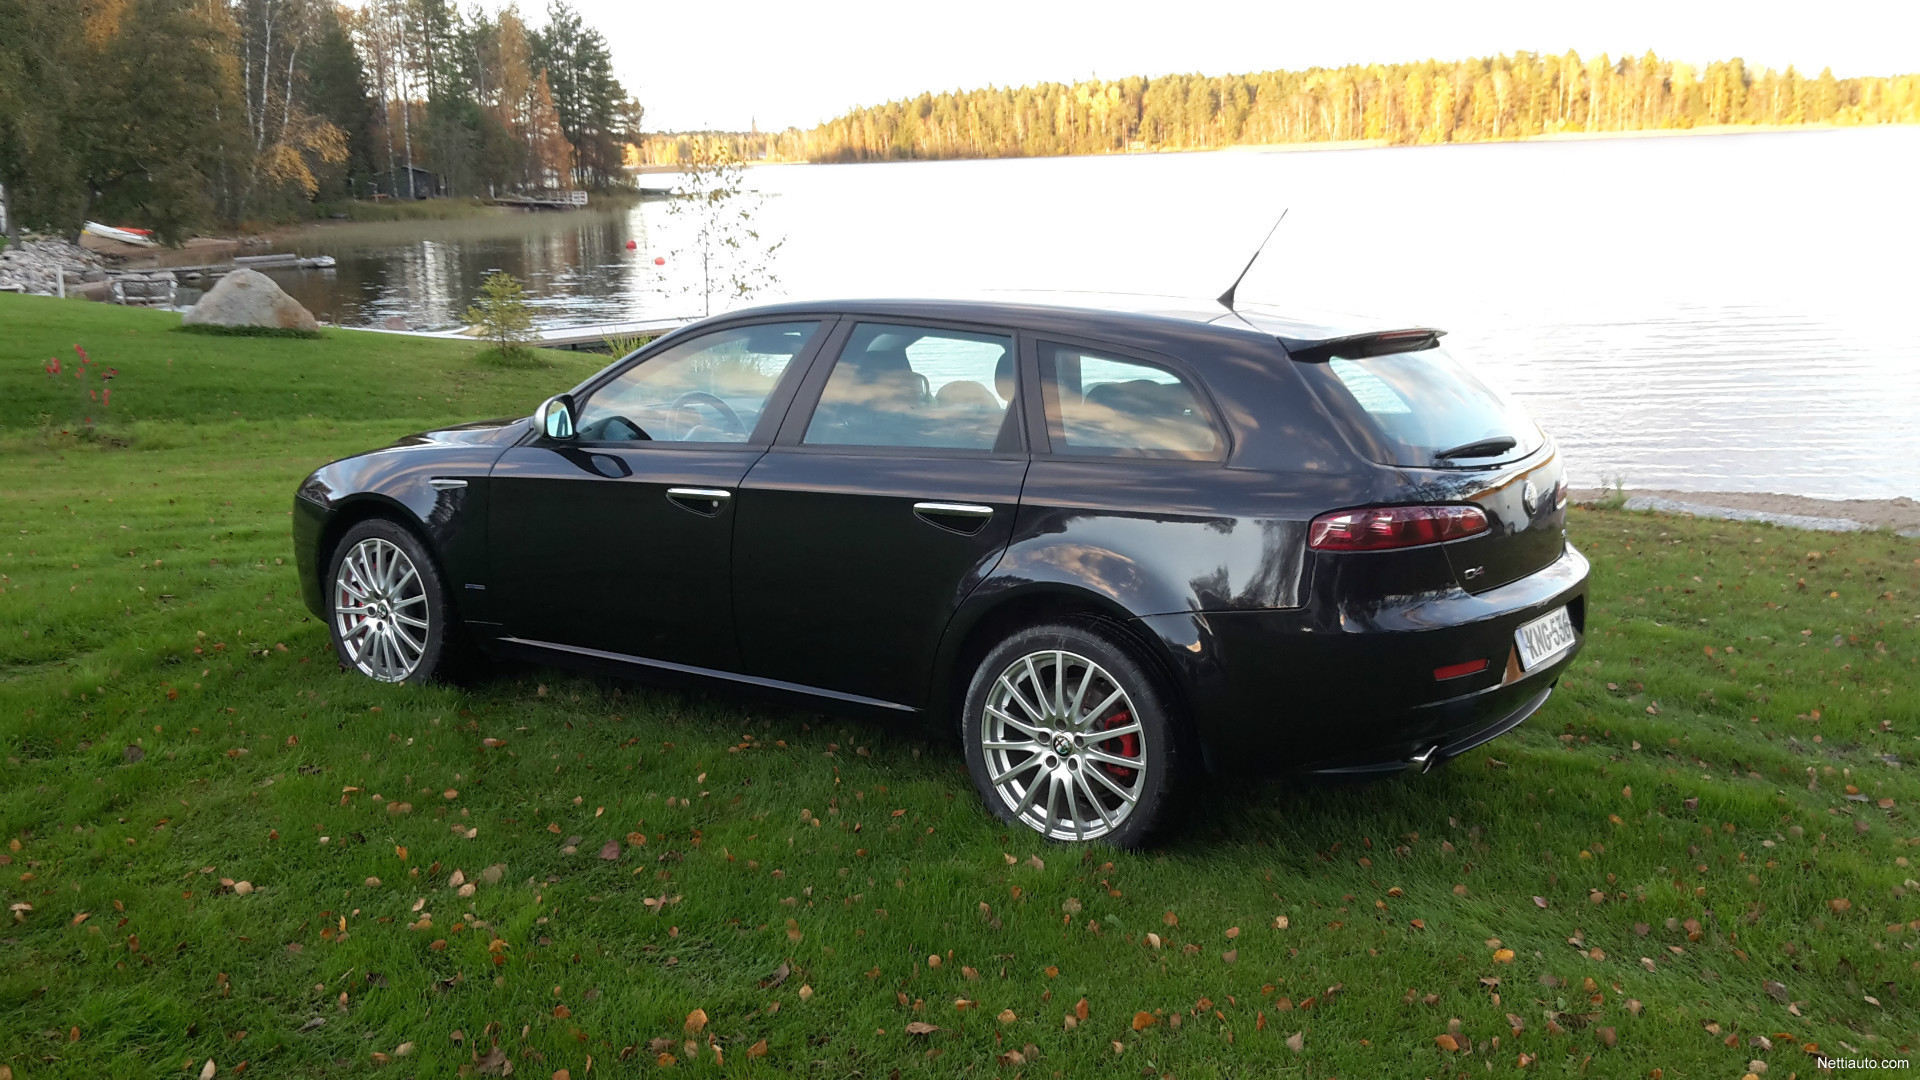 alfa romeo 159 sportwagon 3 2 jts v6 q4 farmari 2007 vaihtoauto nettiauto. Black Bedroom Furniture Sets. Home Design Ideas